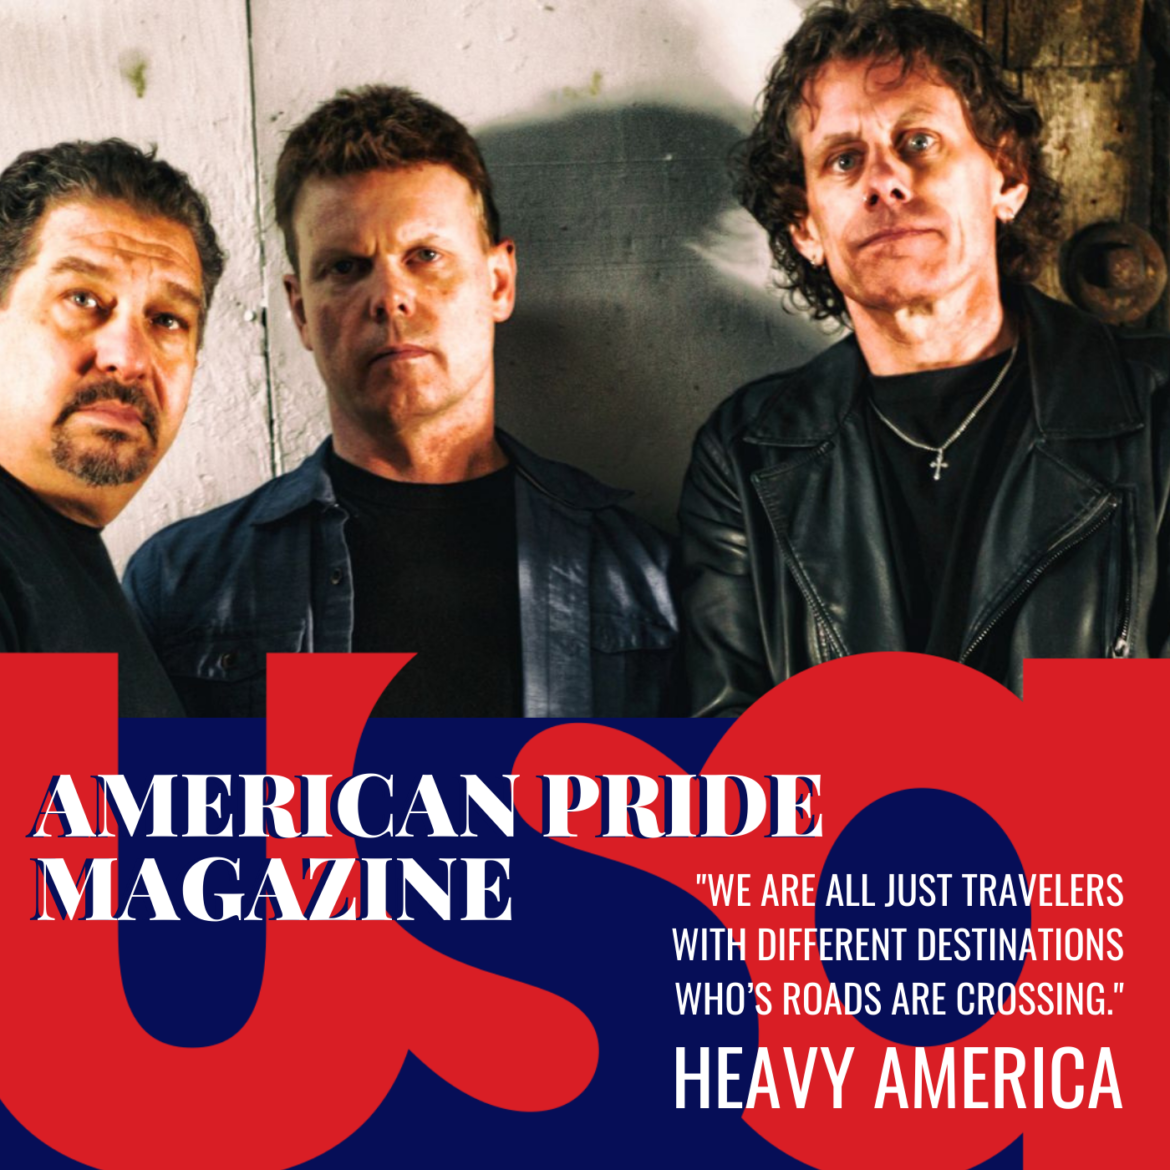 Rock Band Heavy AmericA is finding their Road in Music